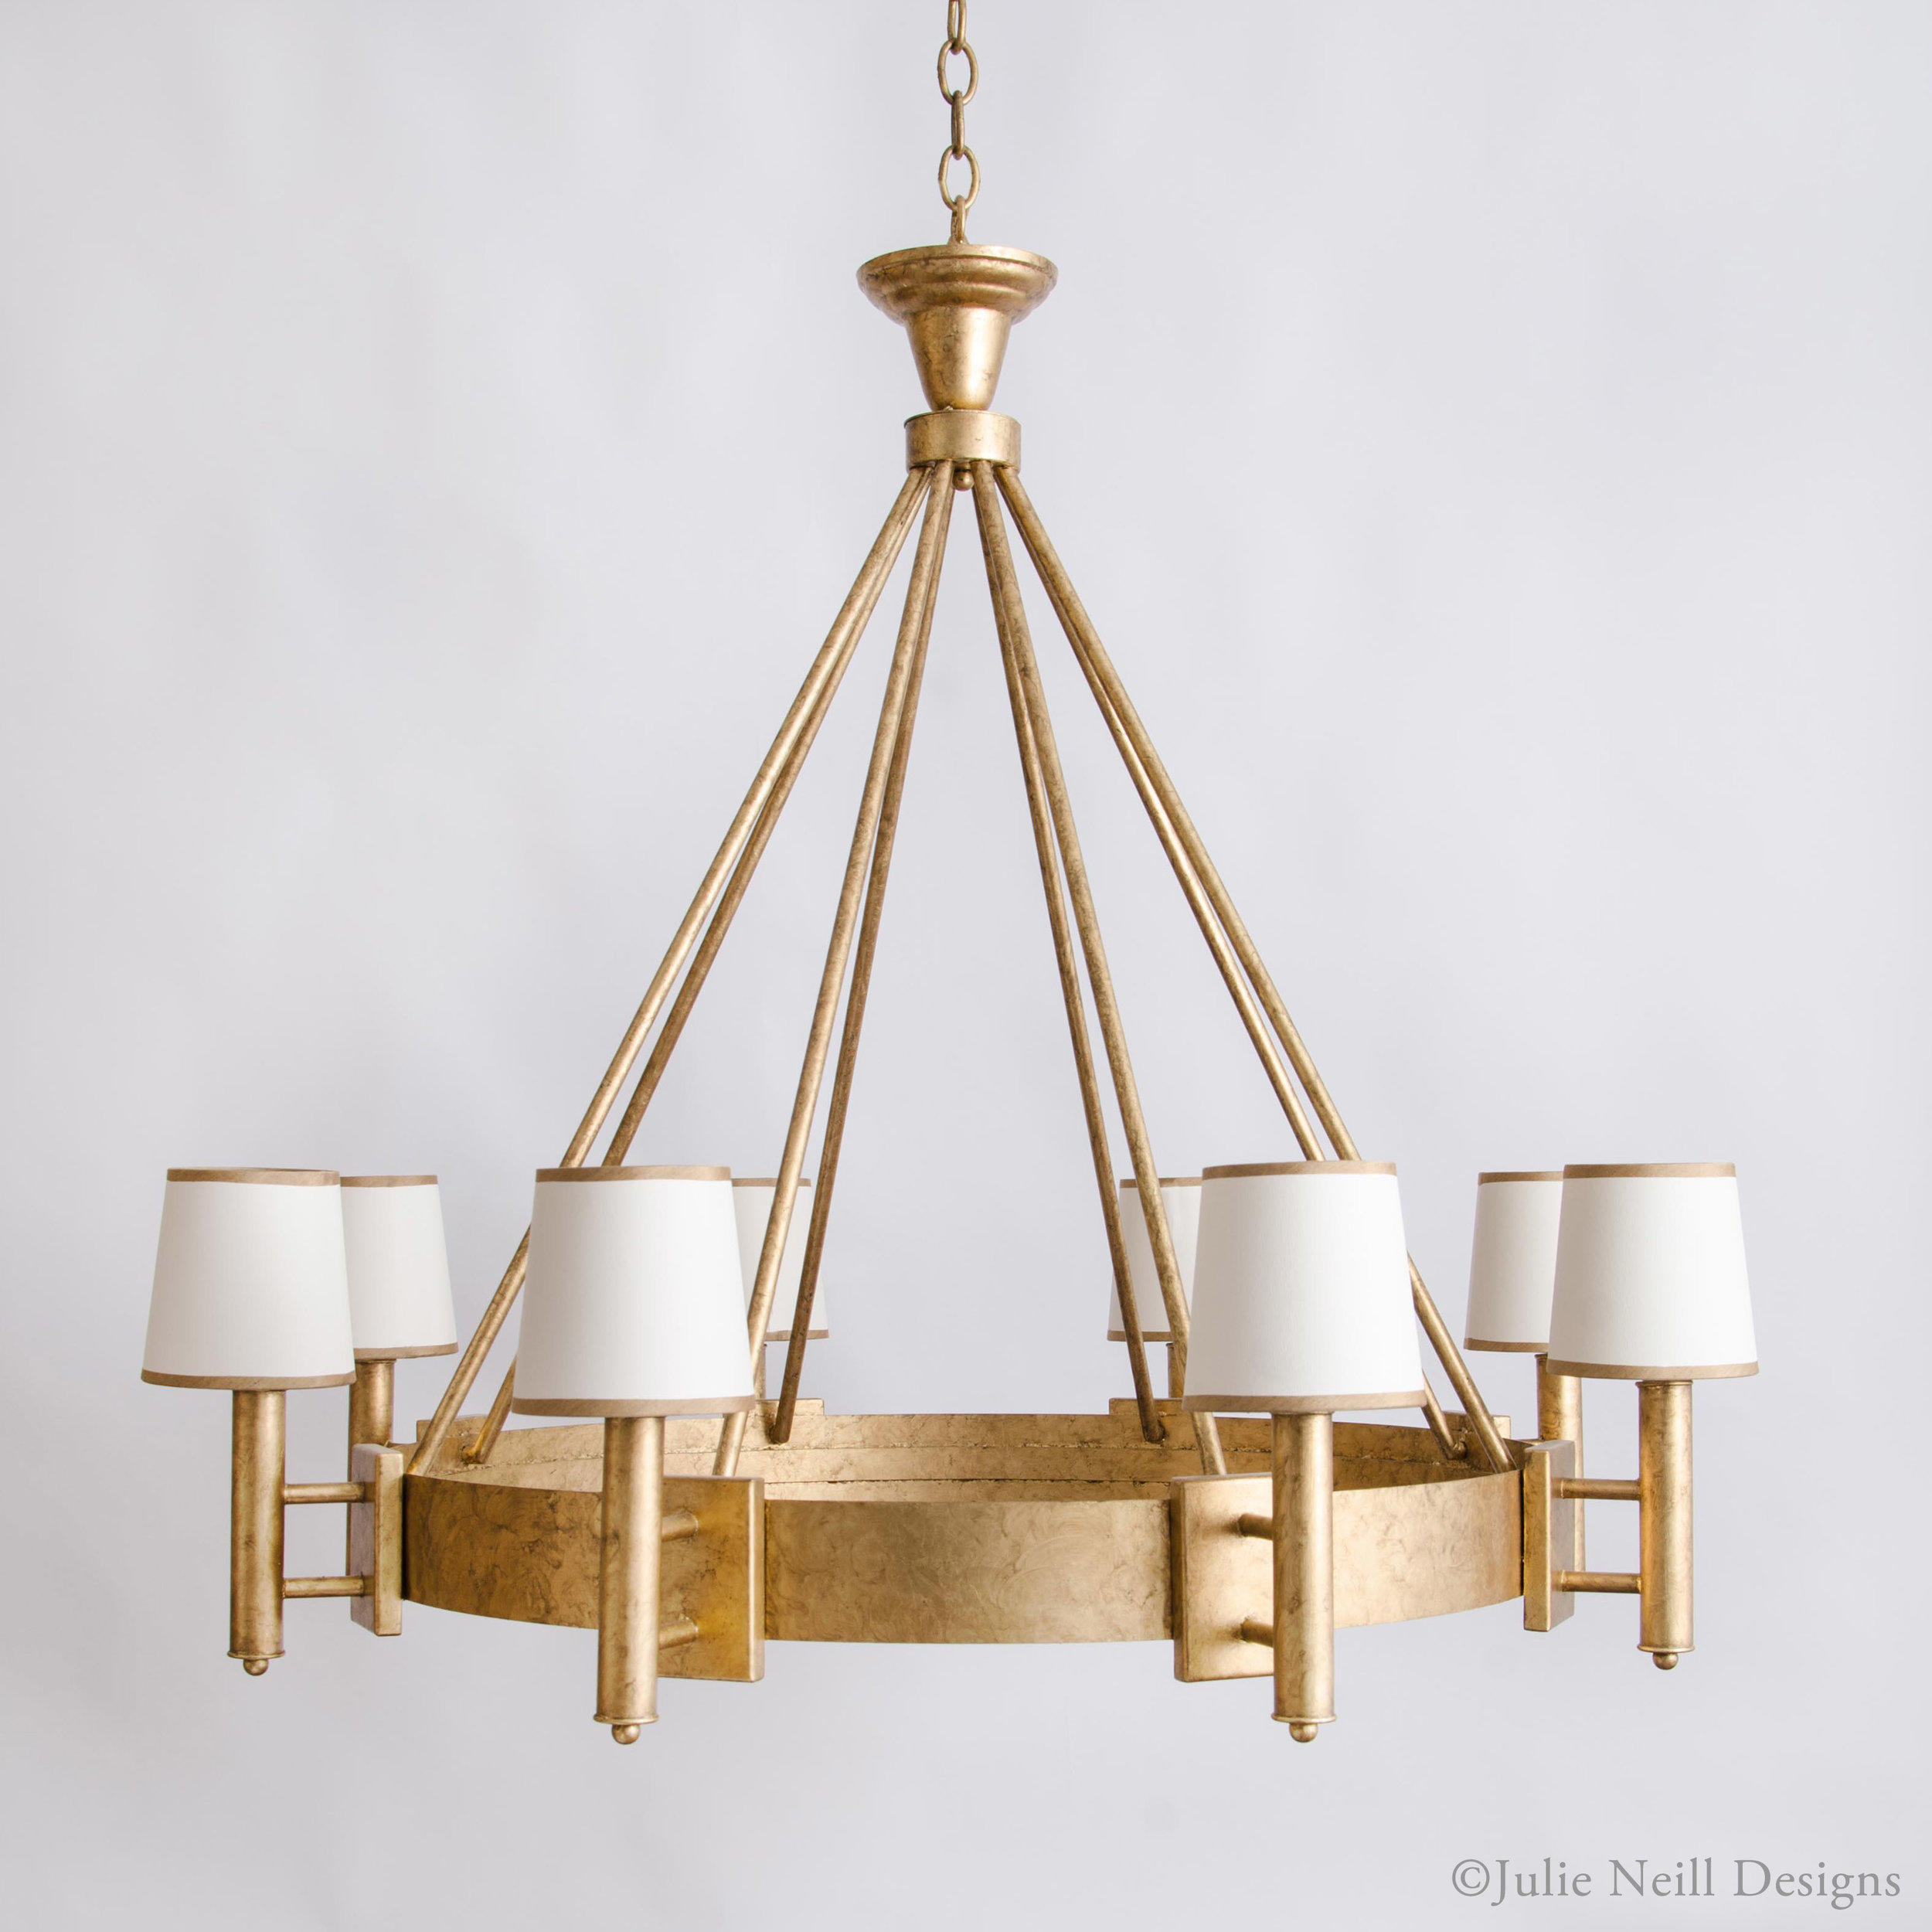 O'Rourke_Chandelier_JulieNeillDesigns